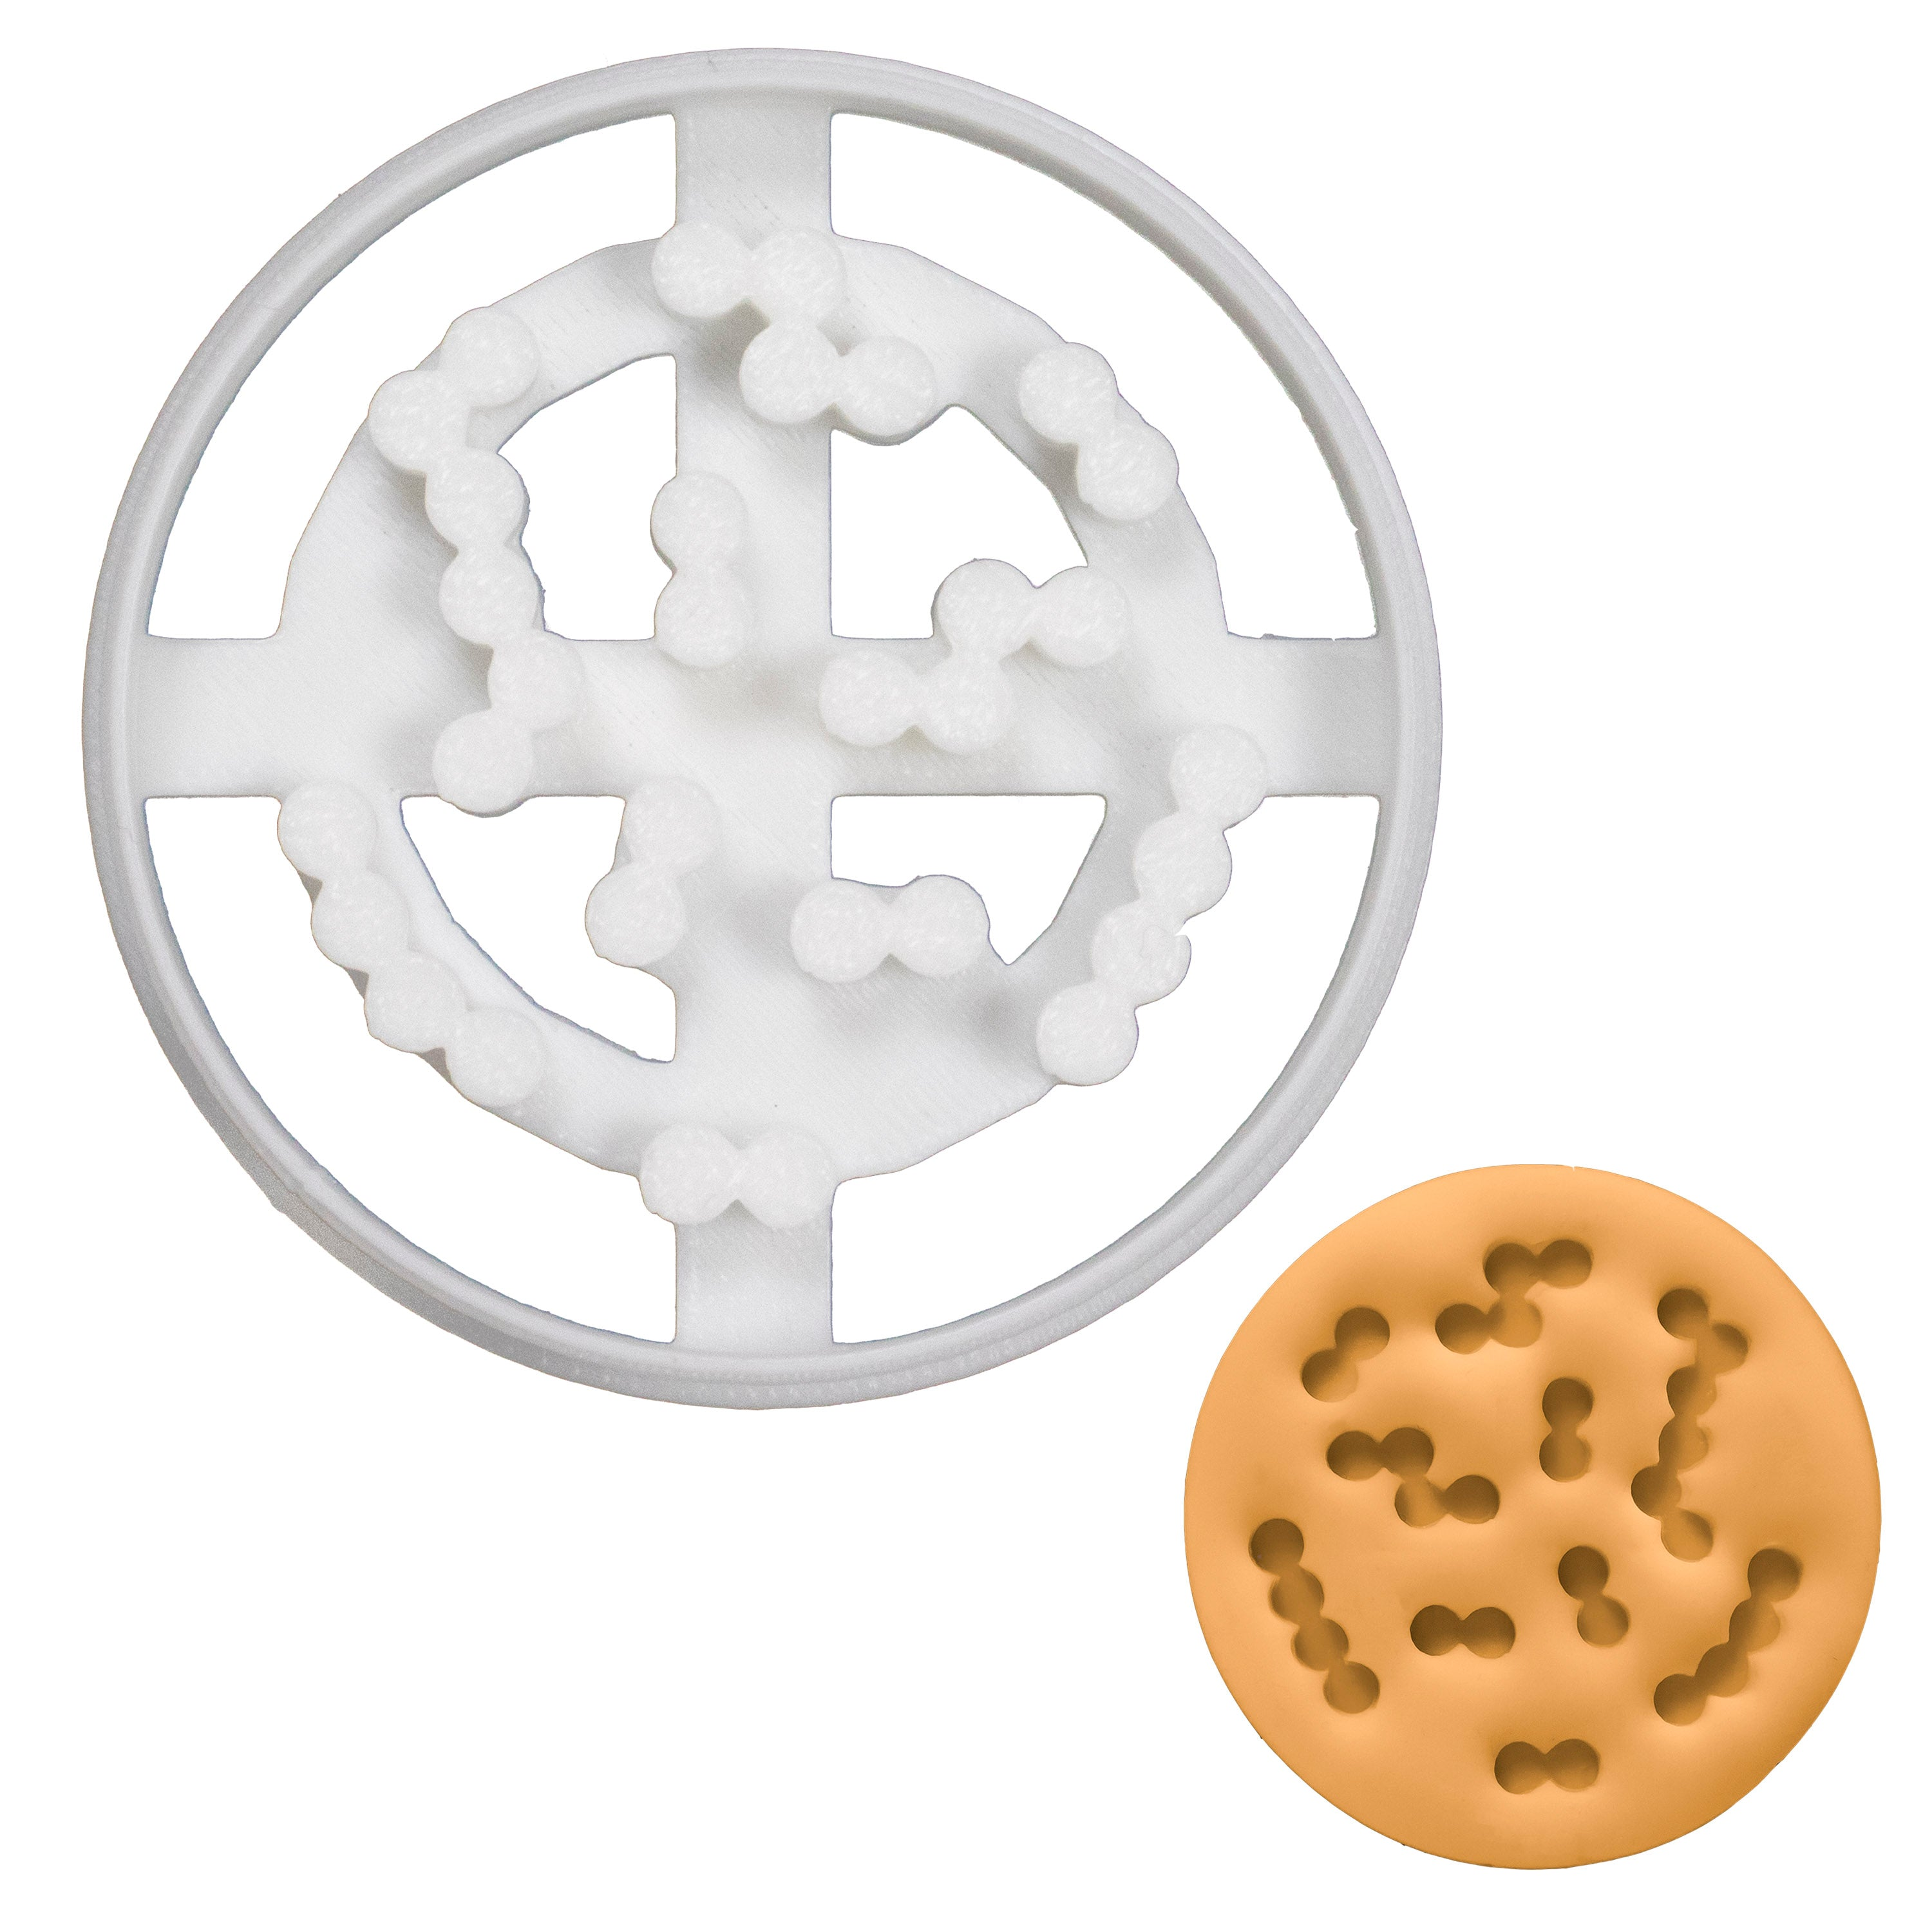 Coccus Bacteria Cookie Cutter